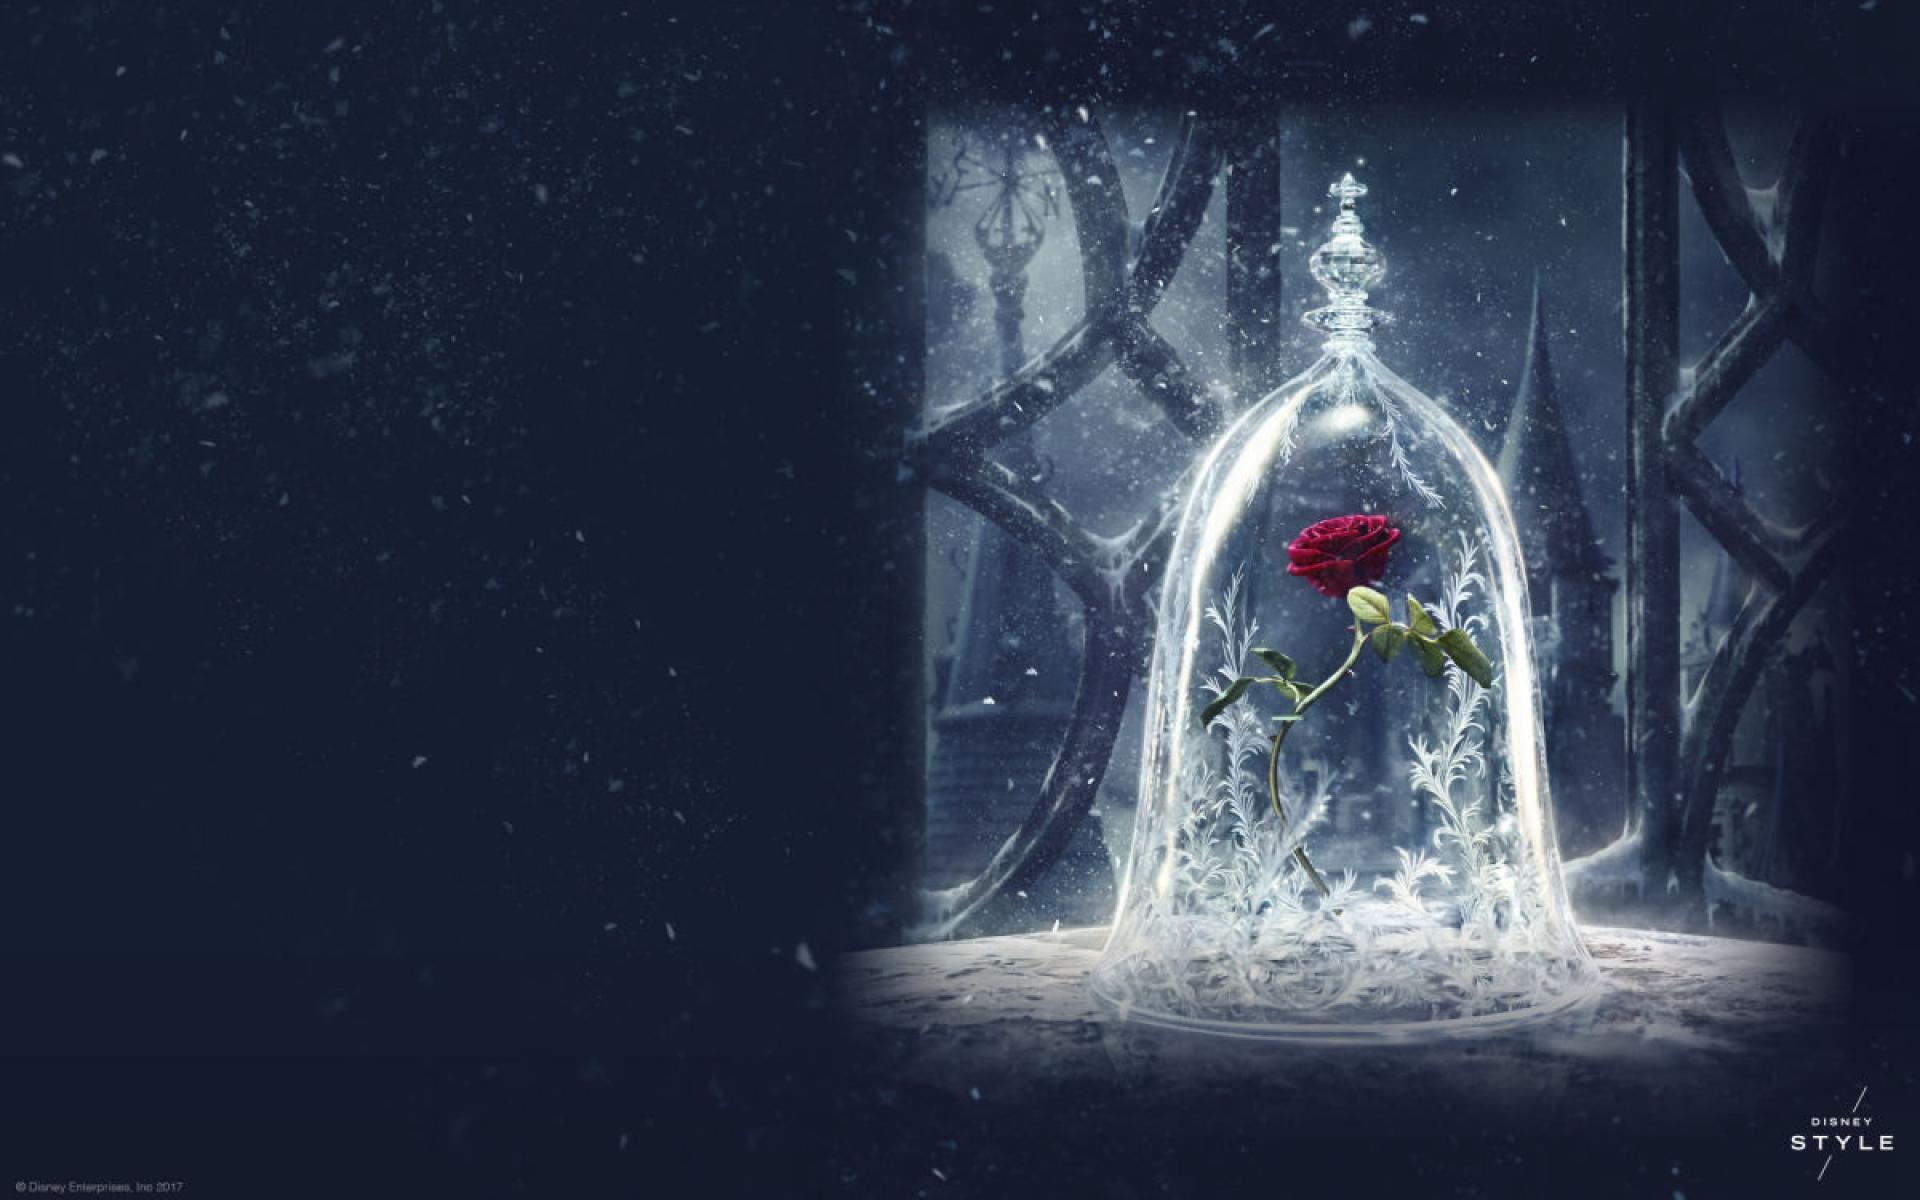 Beauty And The Beast Wallpapers HD VKUDHUF   4USkY 1920x1200